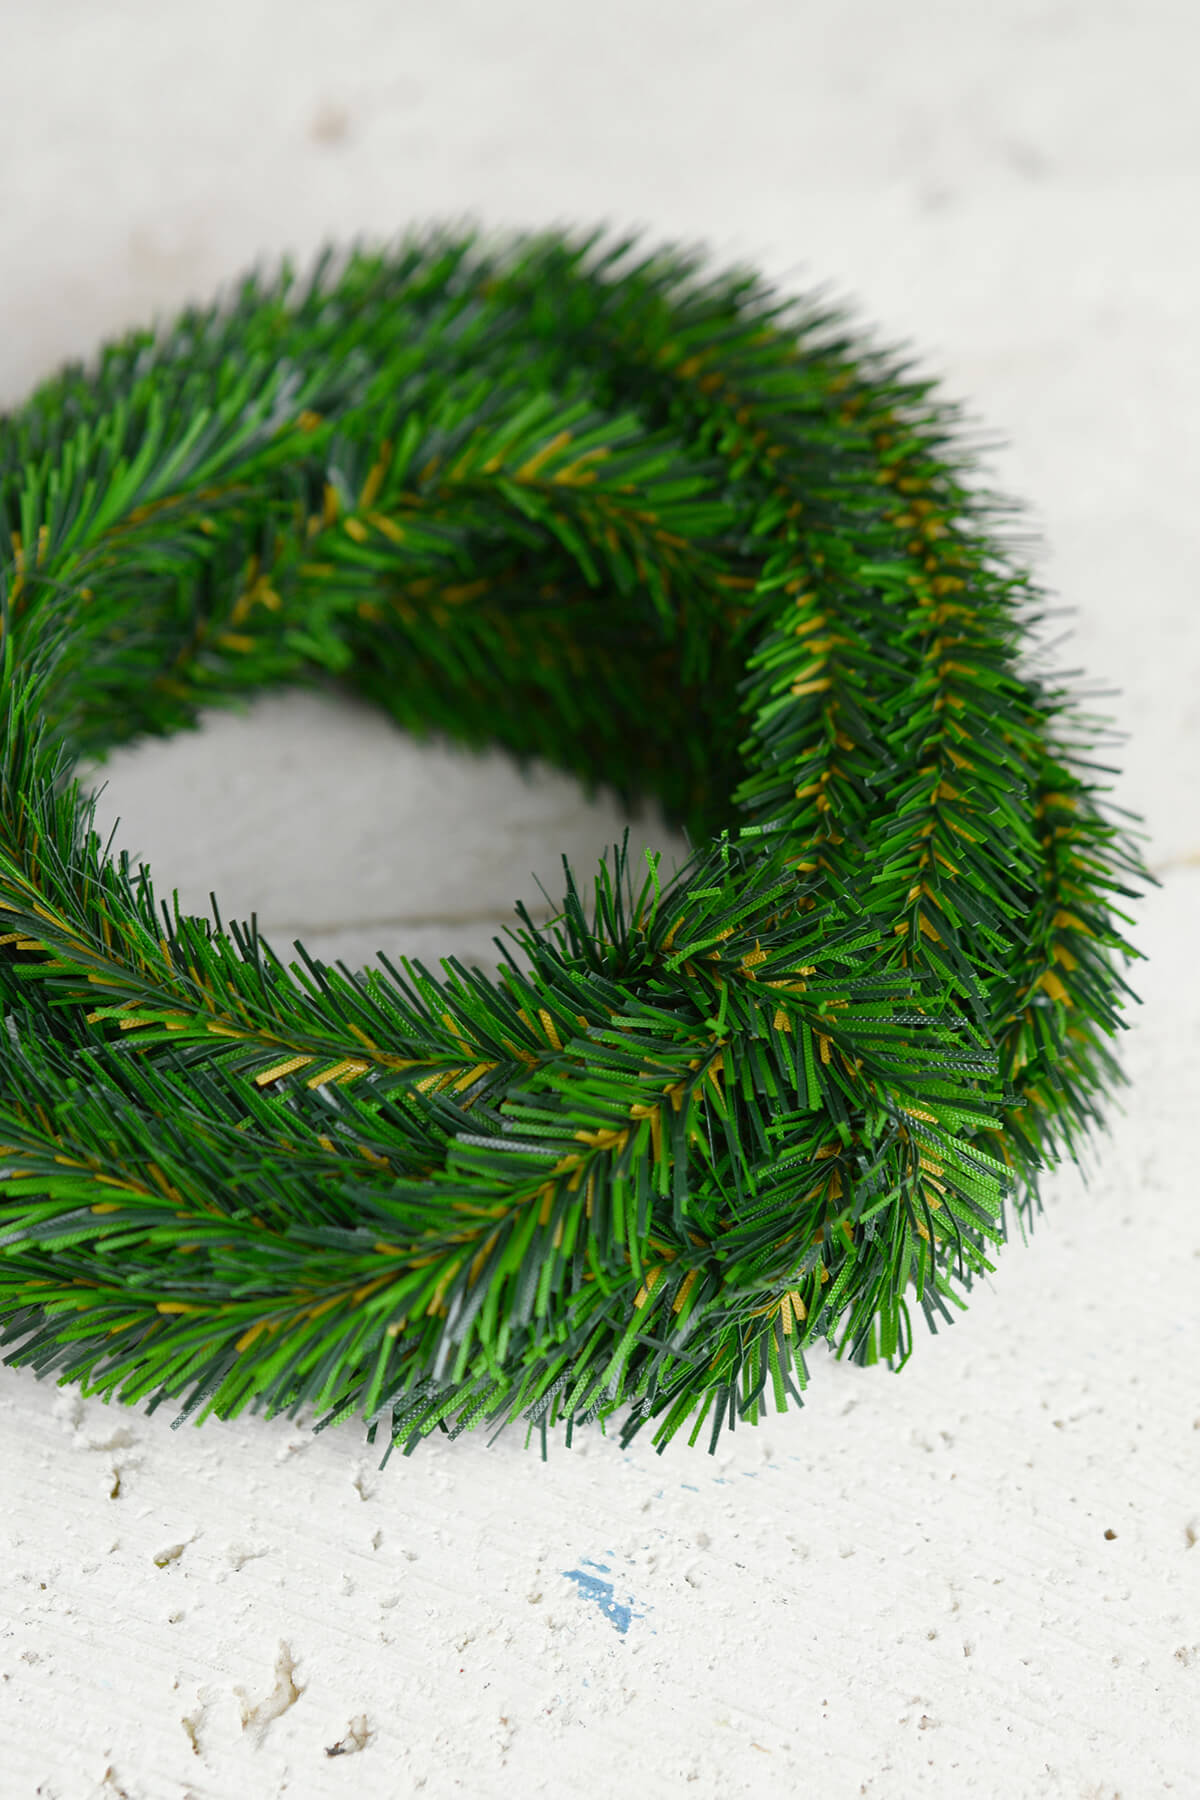 12 Miniature Pine Garlands, Pine Roping, Wired